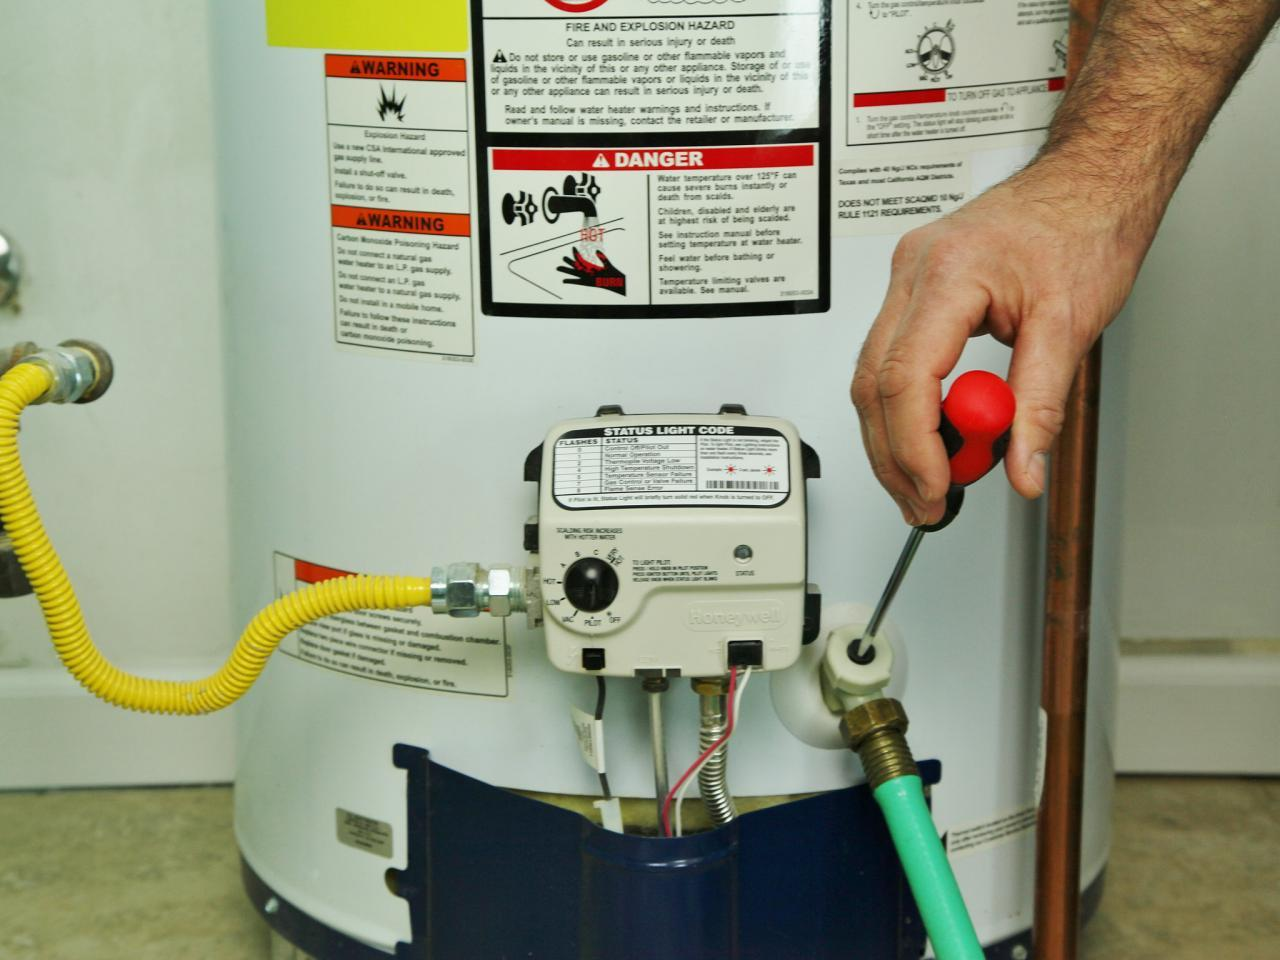 5 Reasons Why Your Gas Water Heater Pilot Light Won't Stay Lit